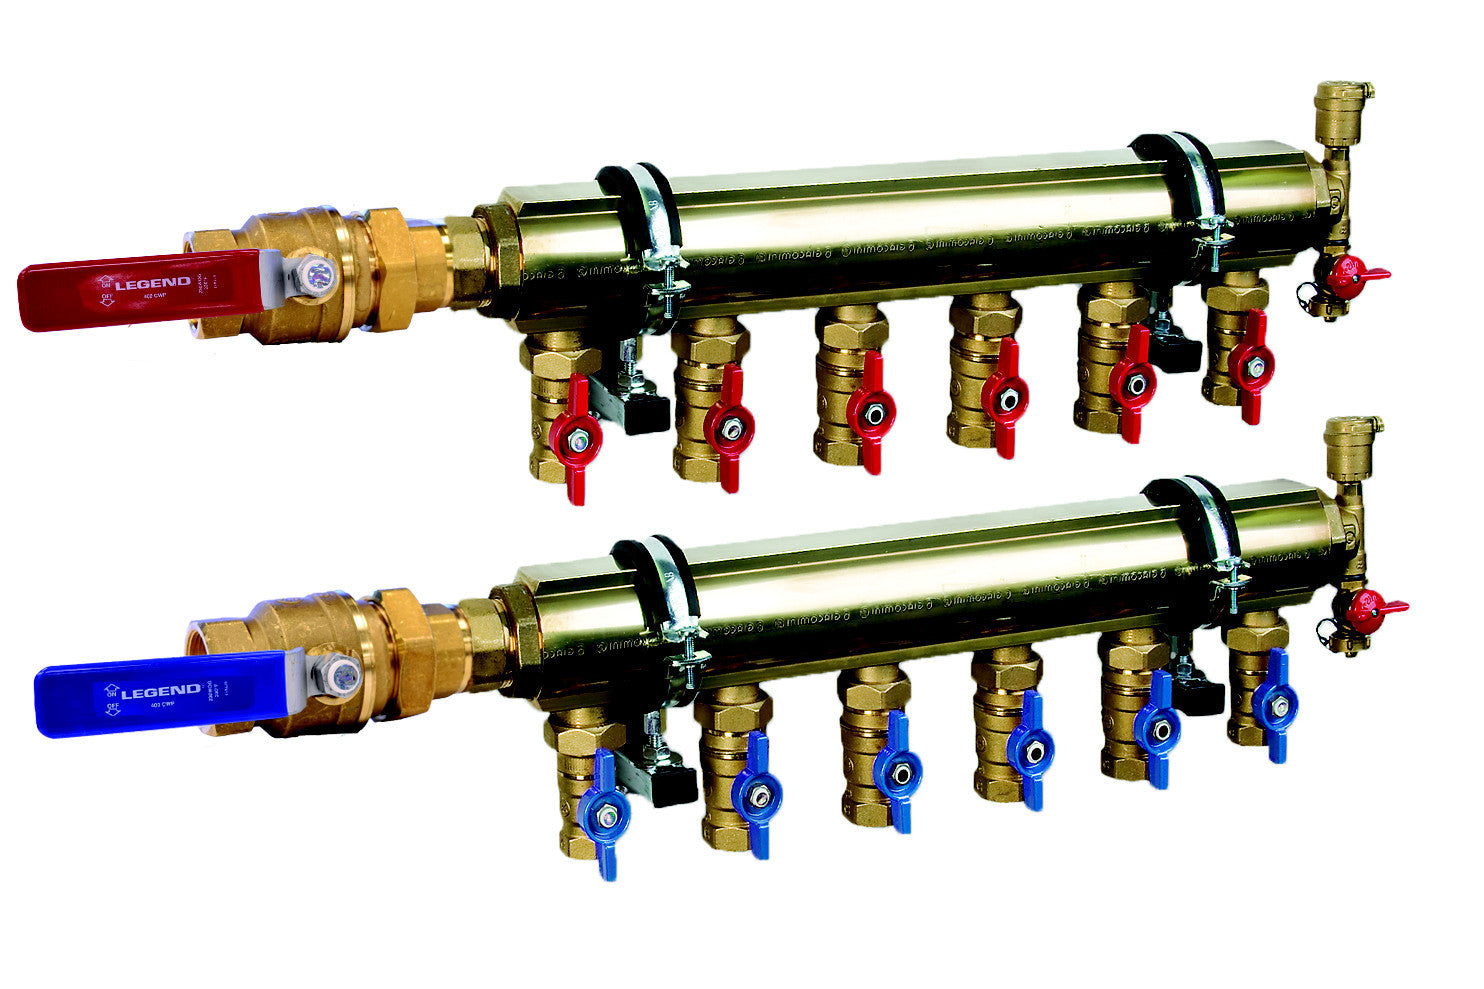 "LEGEND HYDRONICS 8220-15-3   3 PORT 1-1/2"" HI-CAPACITY MANIFOLD BASE - 4 BRACKETS"